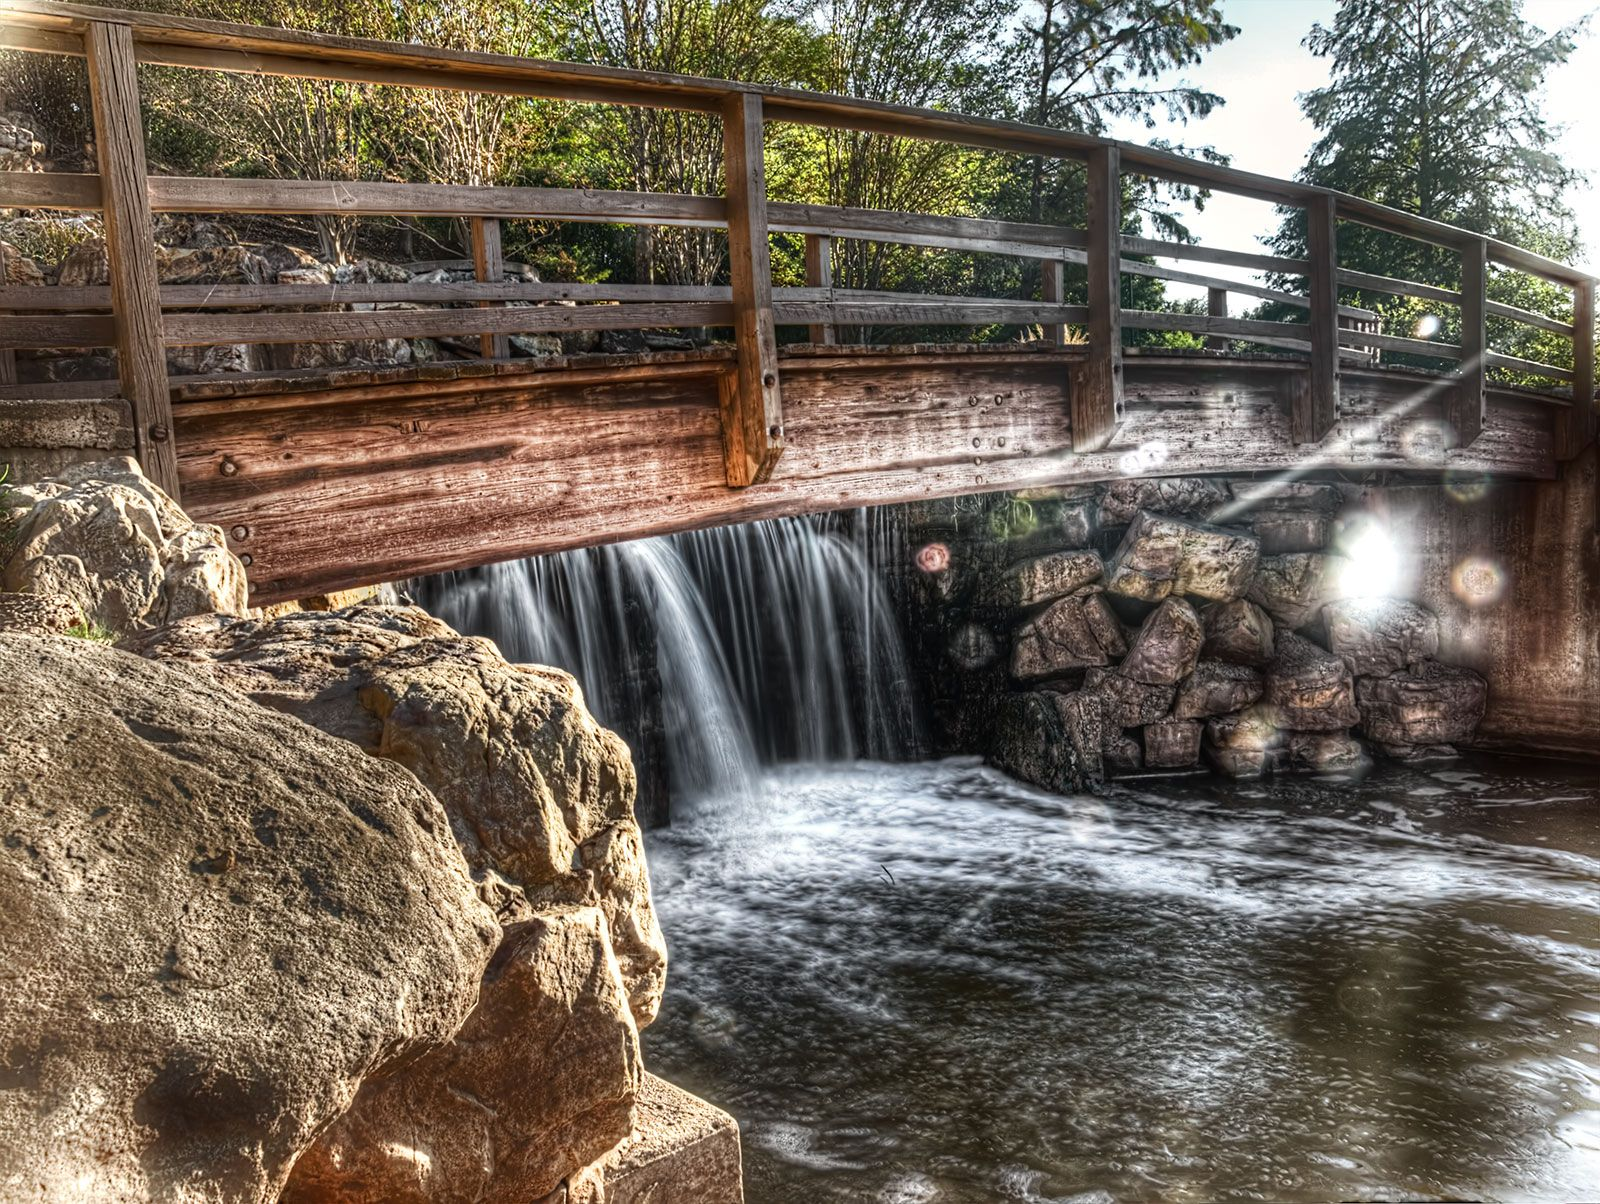 Let's Talk About Water: Tips for Photographing Waterfalls ...